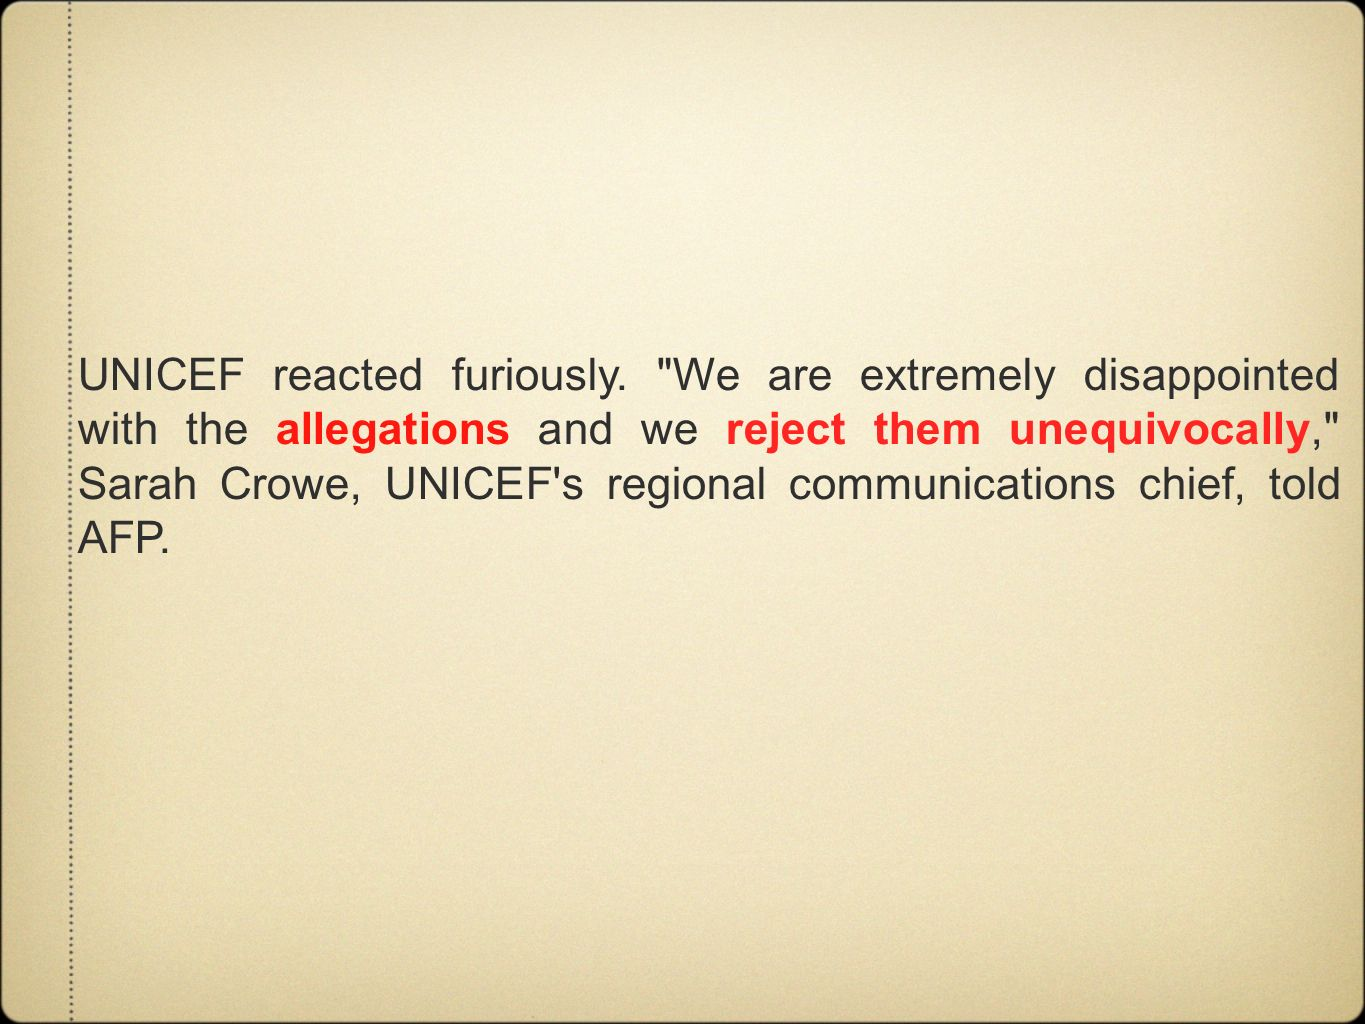 UNICEF reacted furiously.